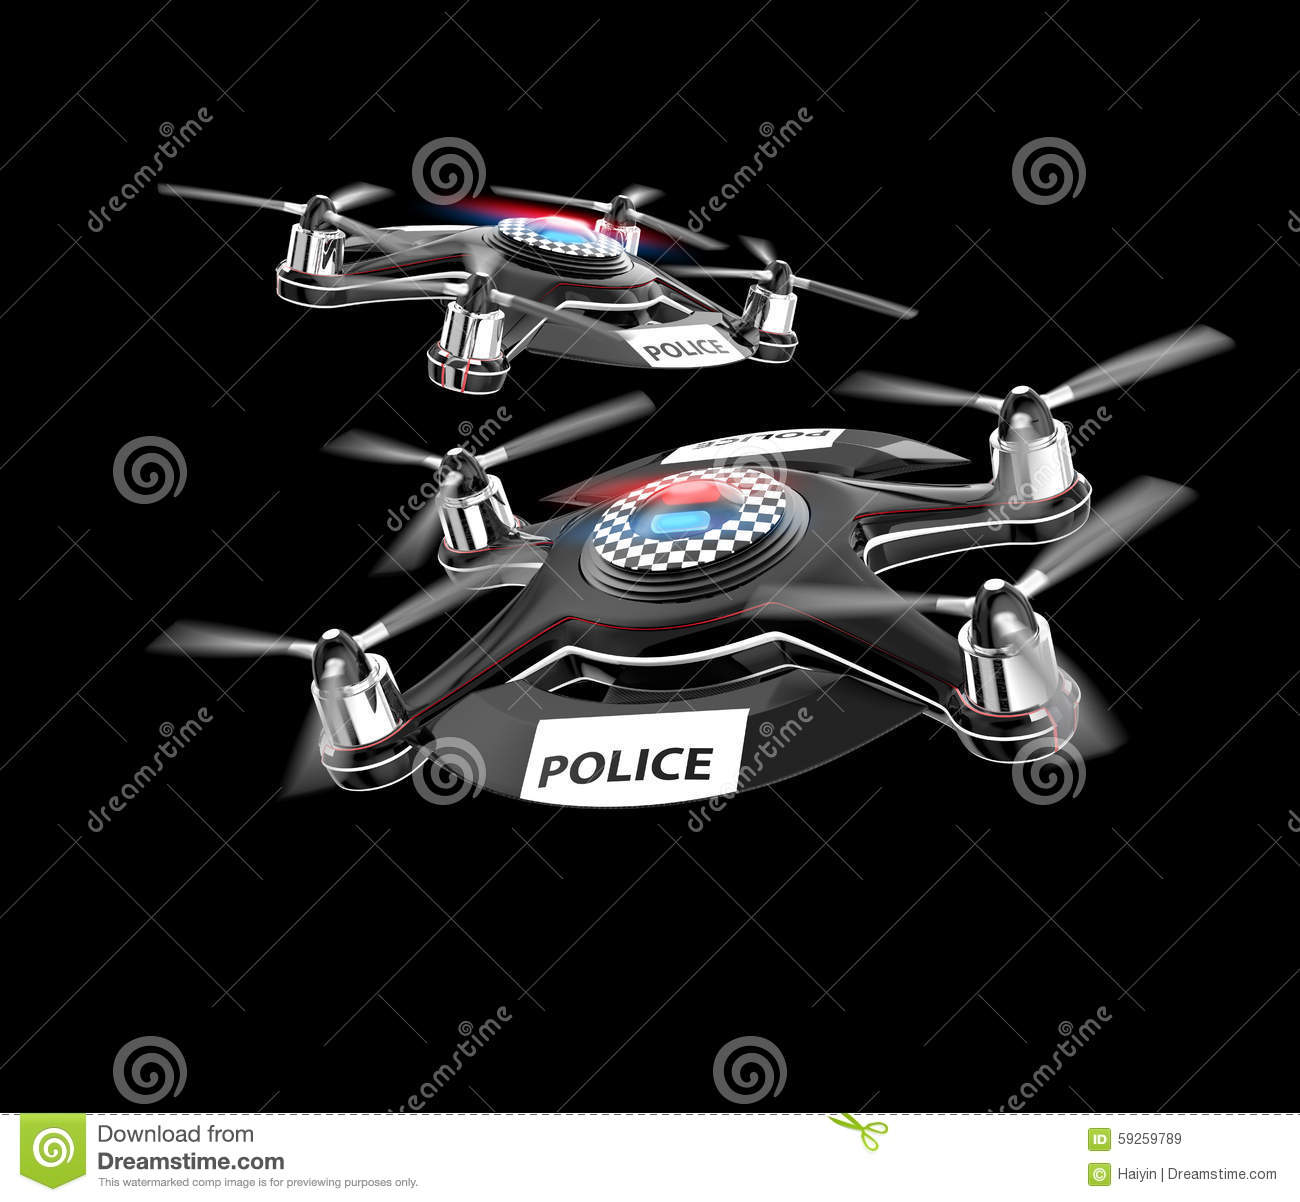 Two Police Drones On Black Background Royalty Free Stock Images